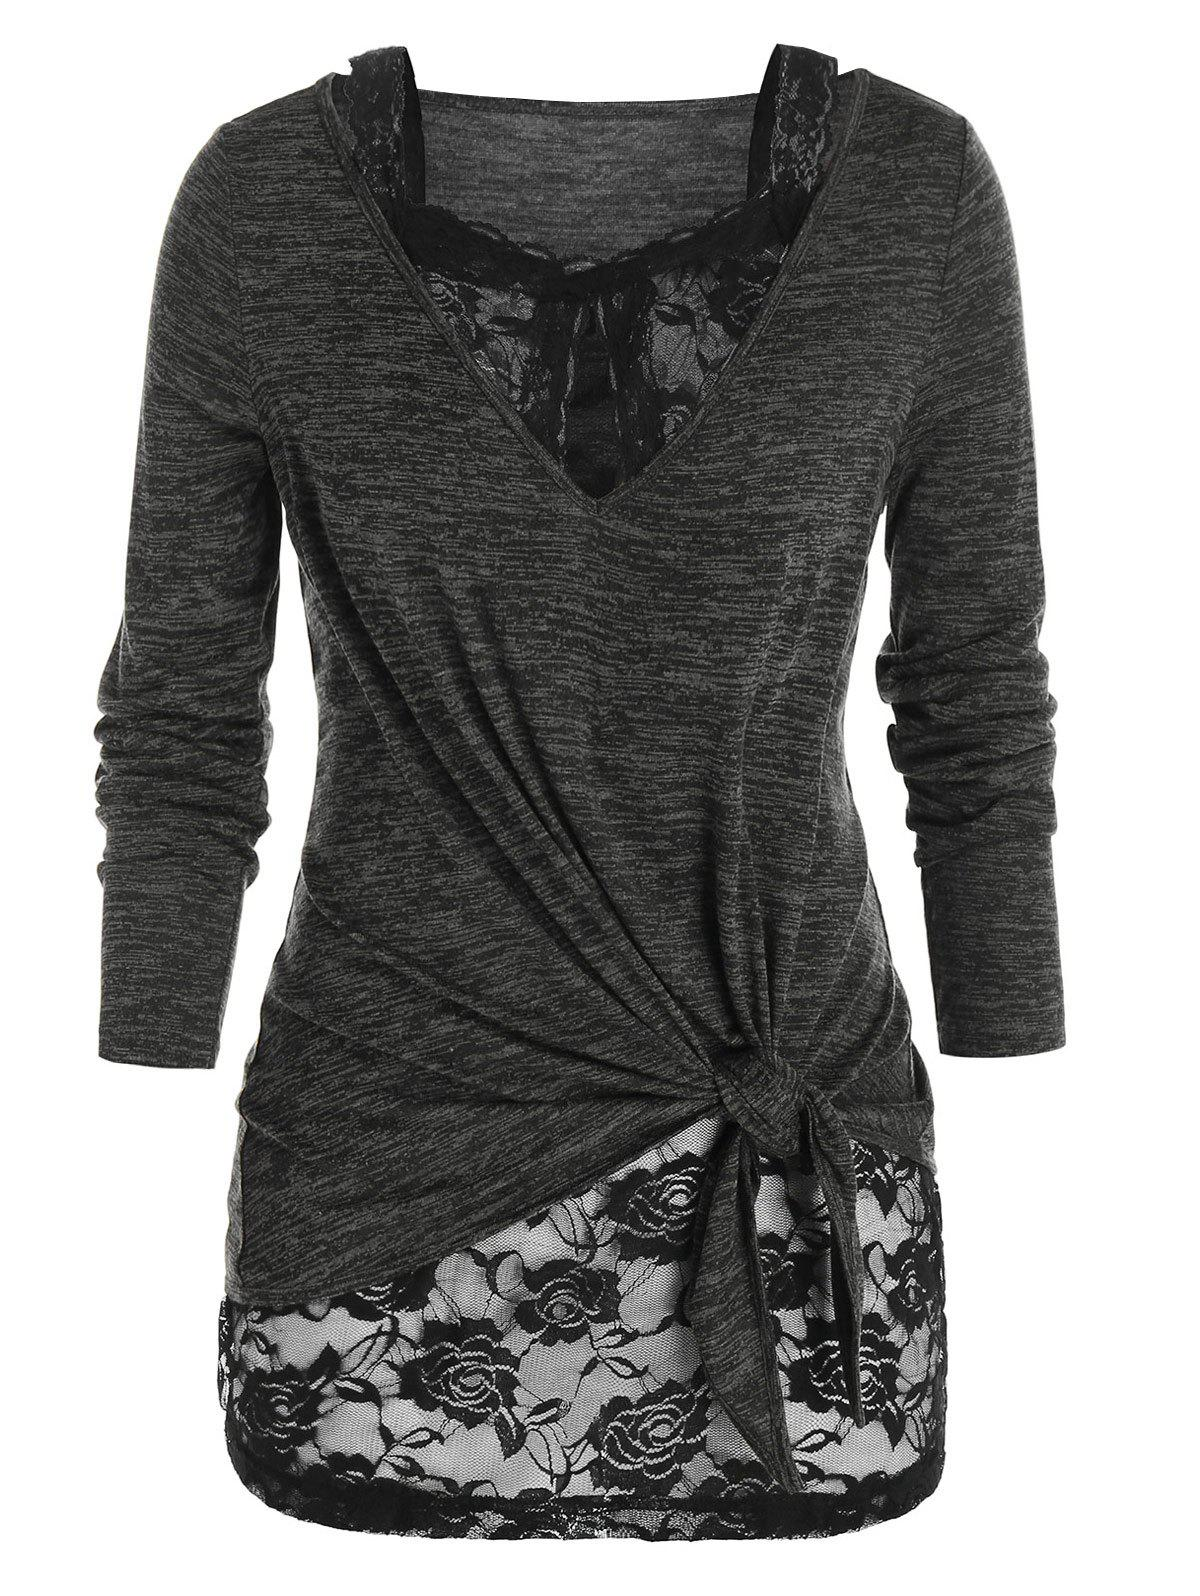 Plus Size Sheer Lace Knotted Two Piece T Shirt Sets - DARK GRAY 5X